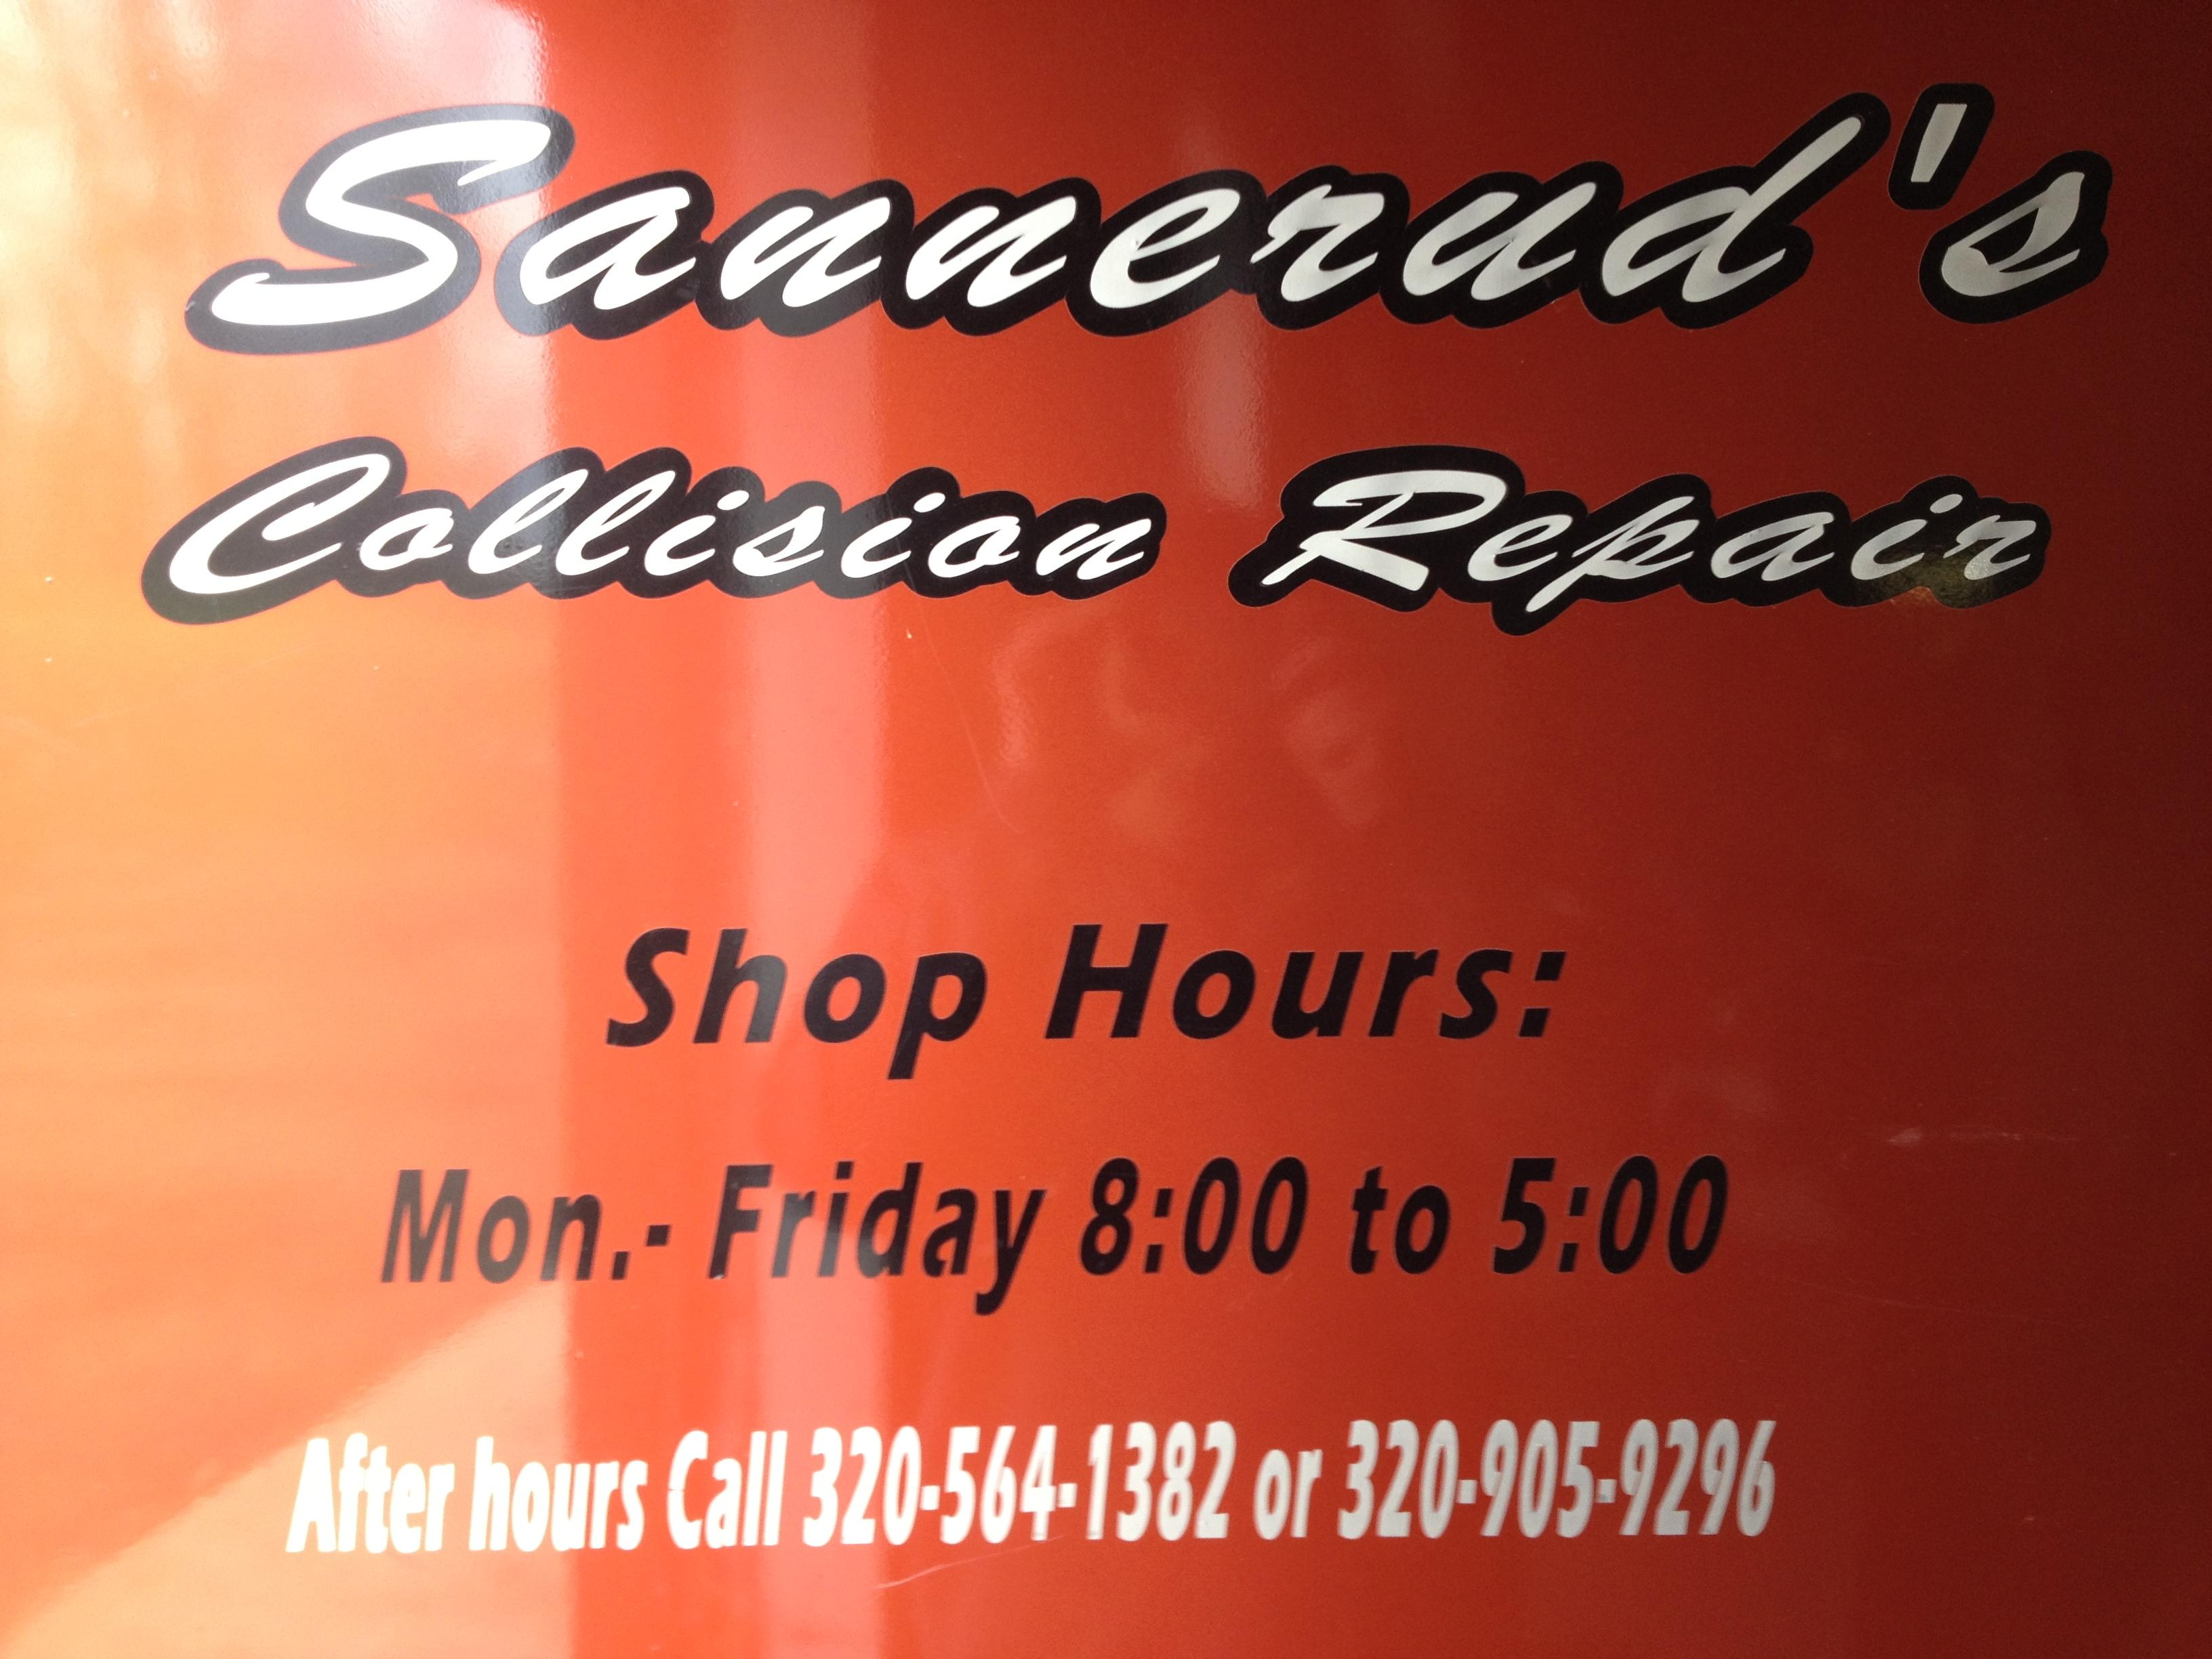 Sannerud's Collision Repair & Glass